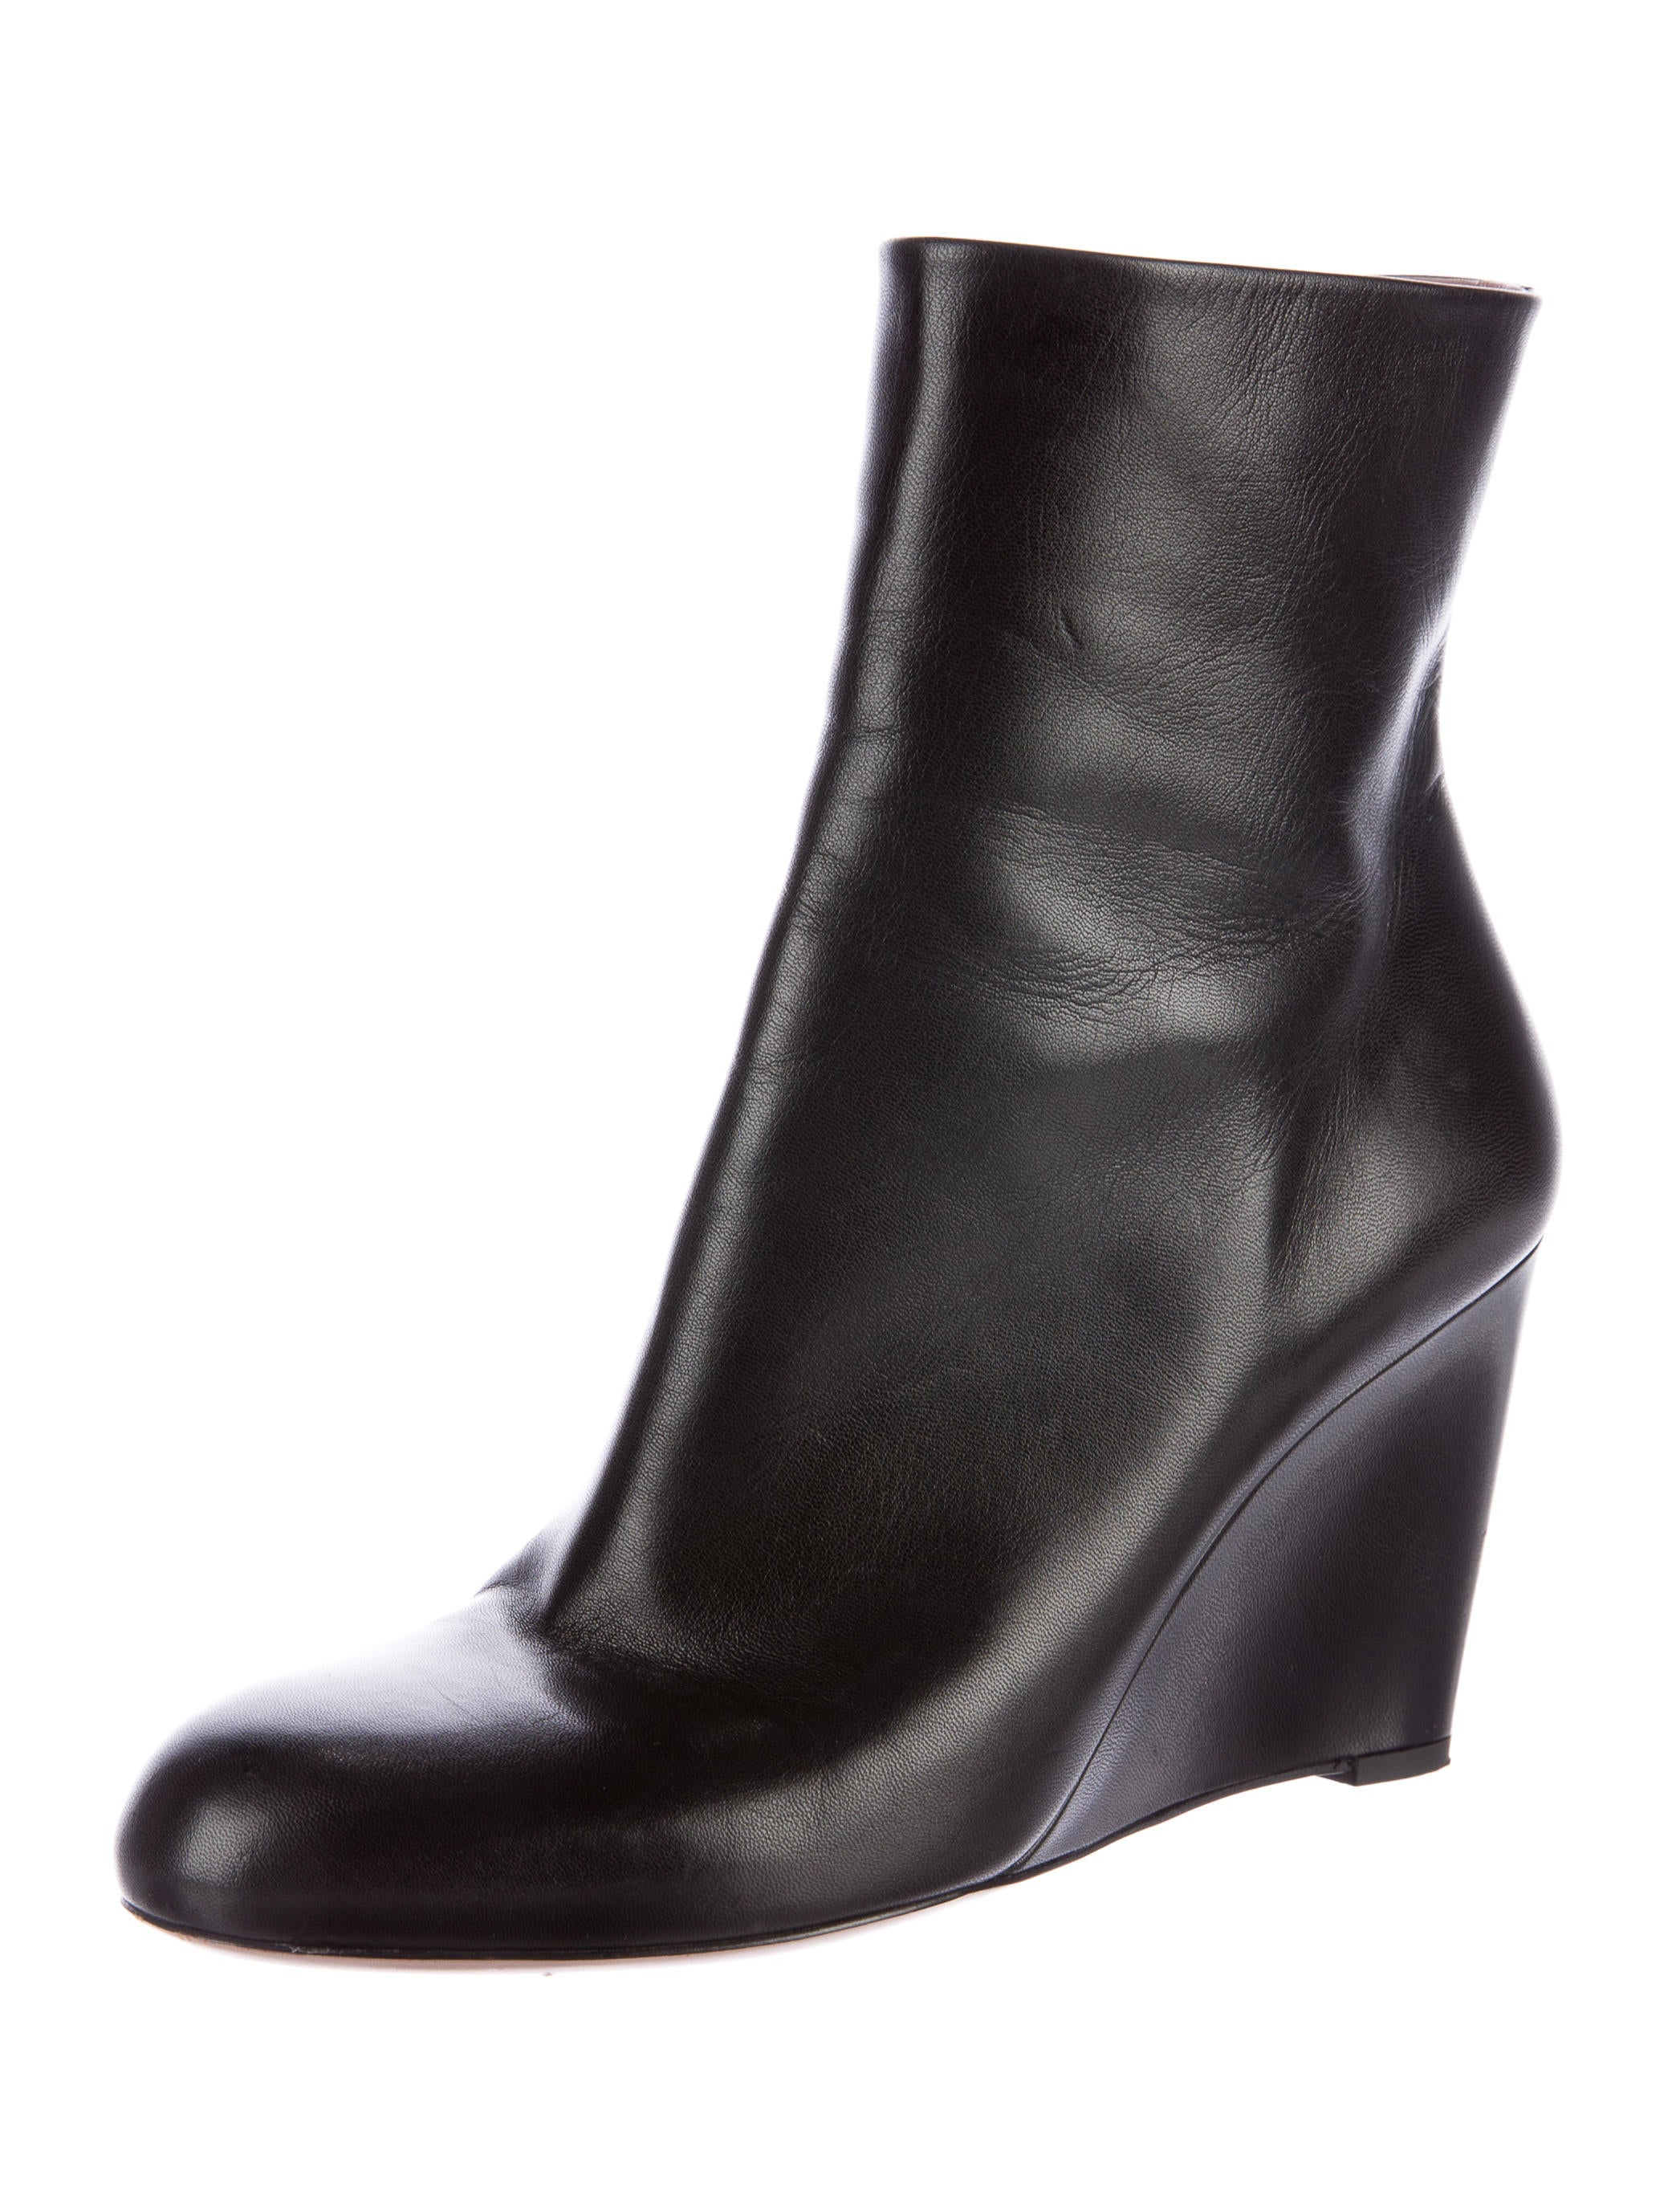 gucci leather wedge ankle boots shoes guc134082 the